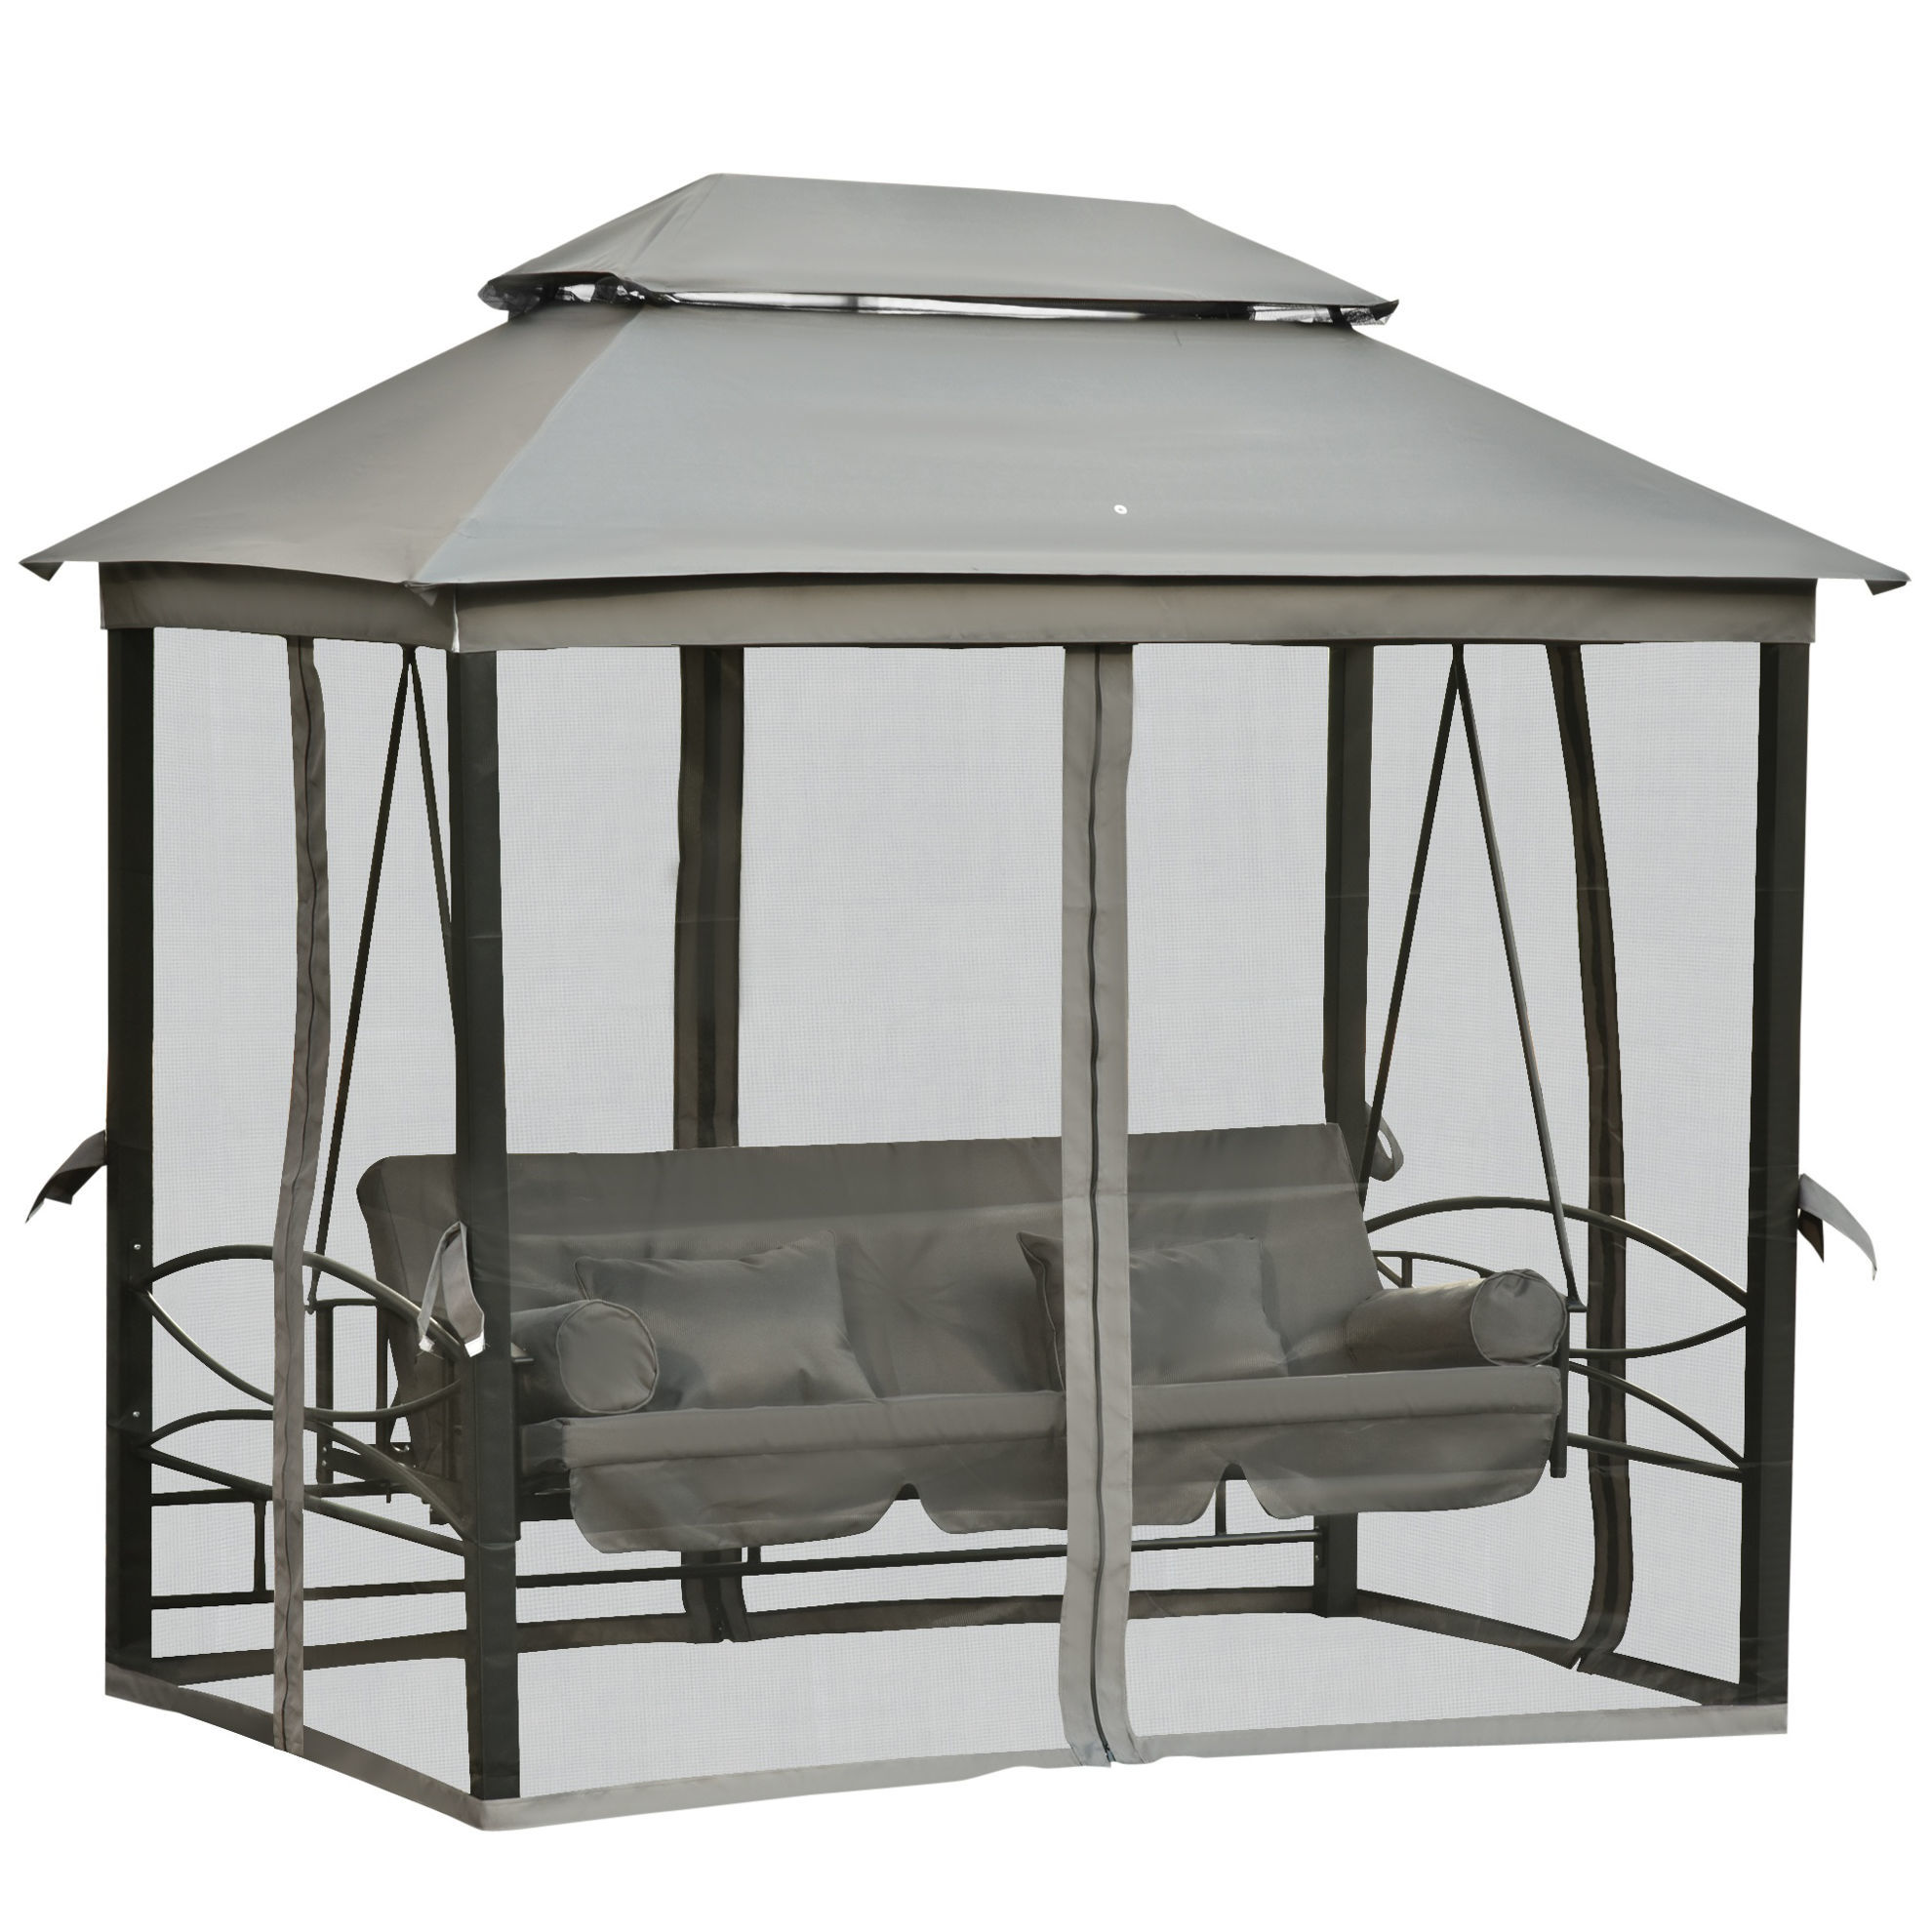 Picture of Outdoor Daybed Swing - Gray